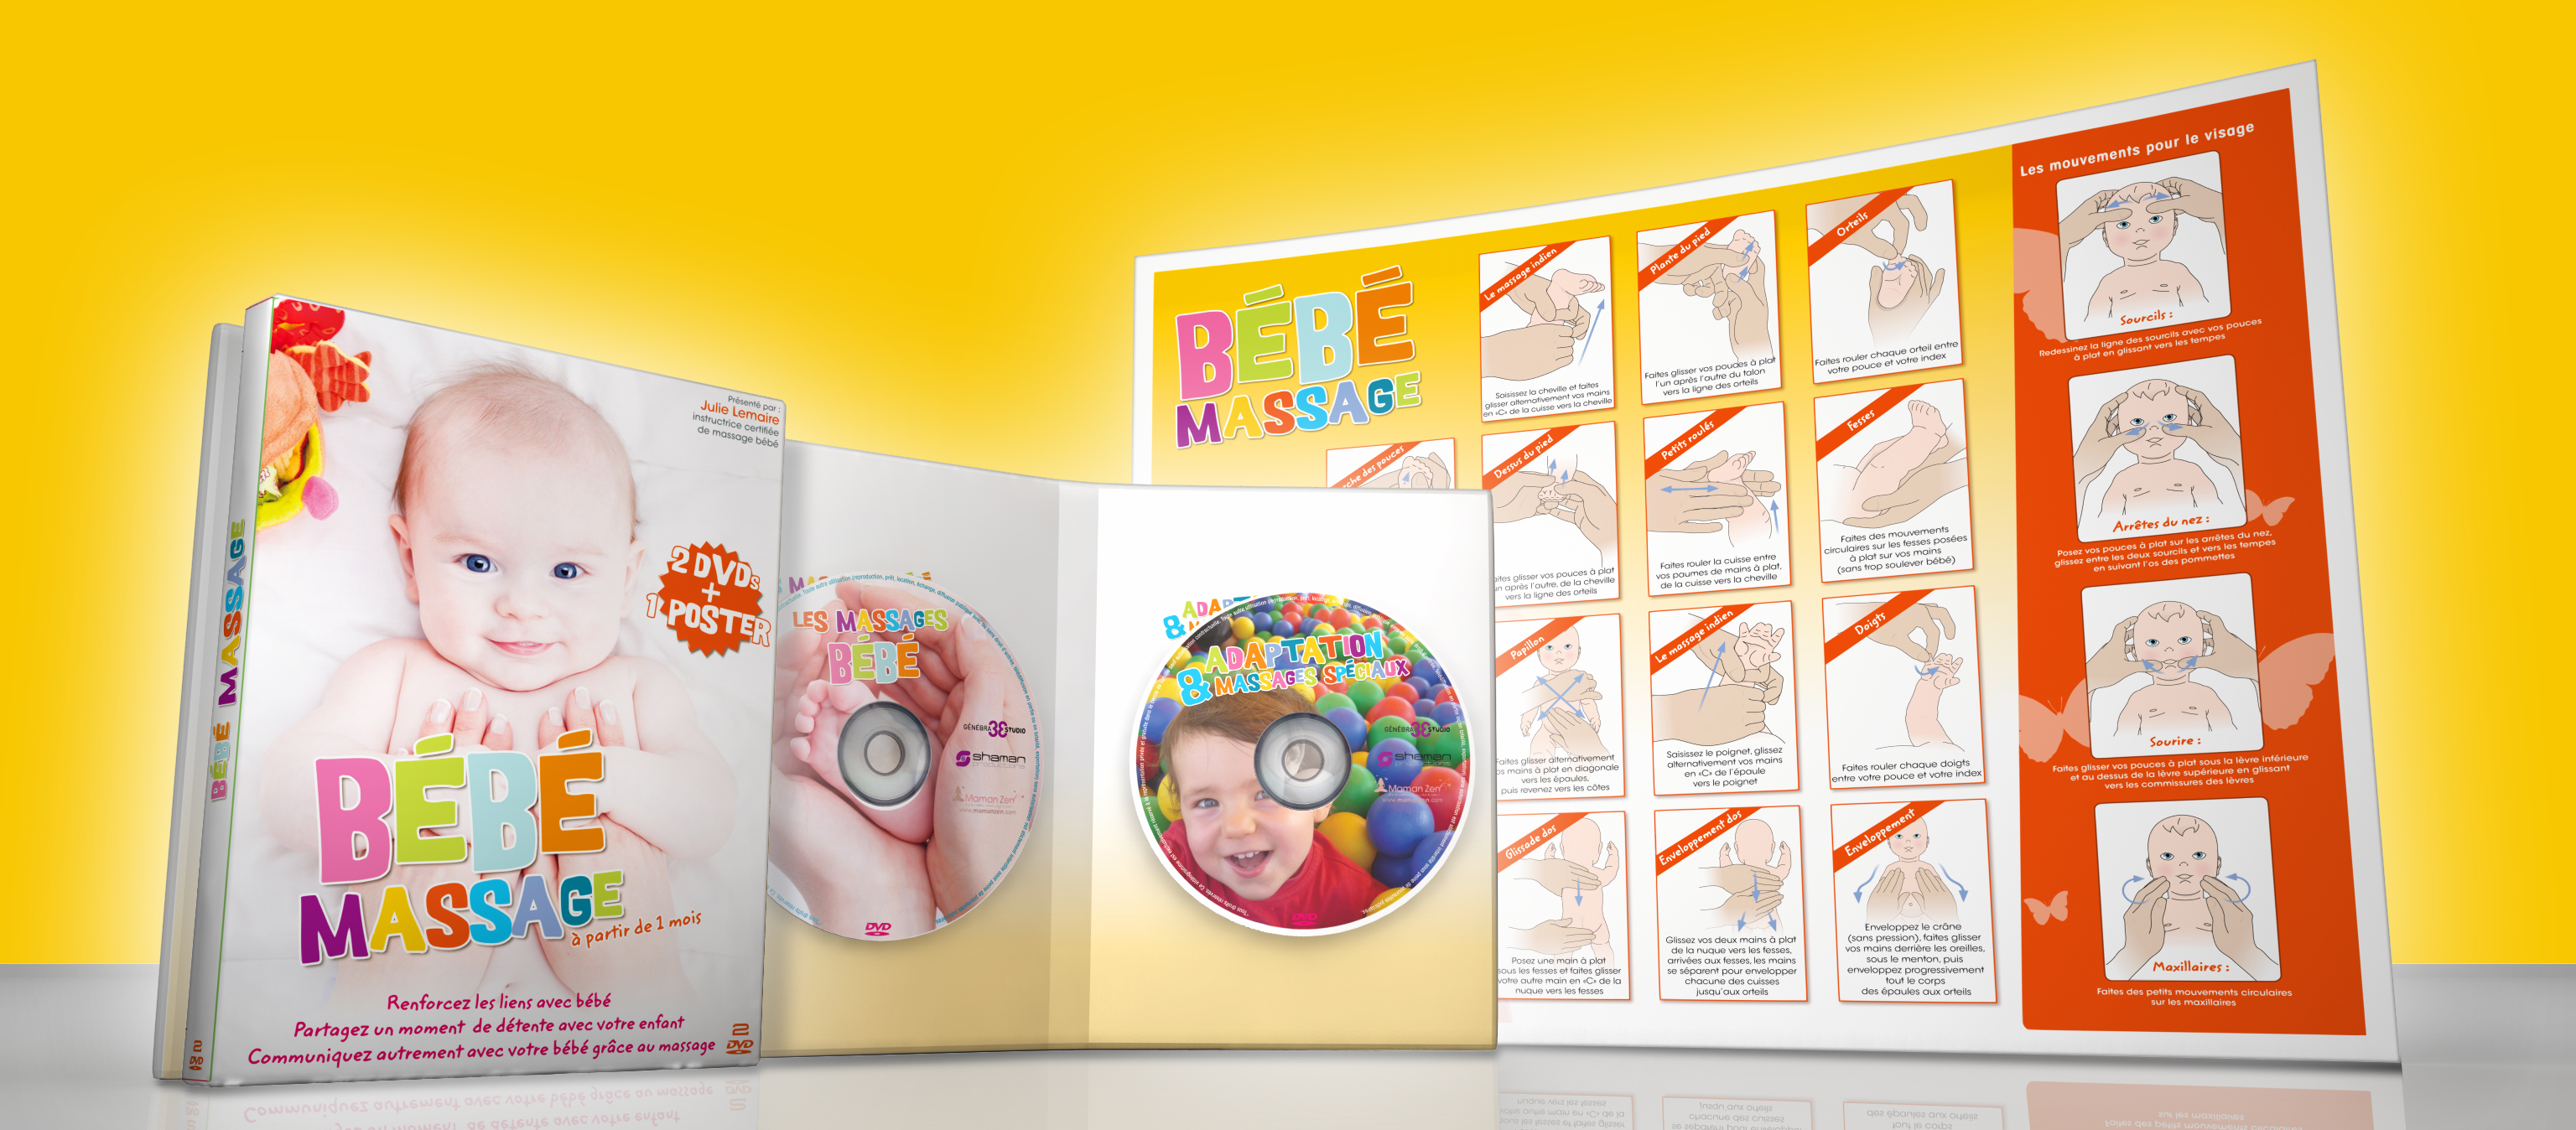 BEBE MASSAGE - 2 DVD + POSTER